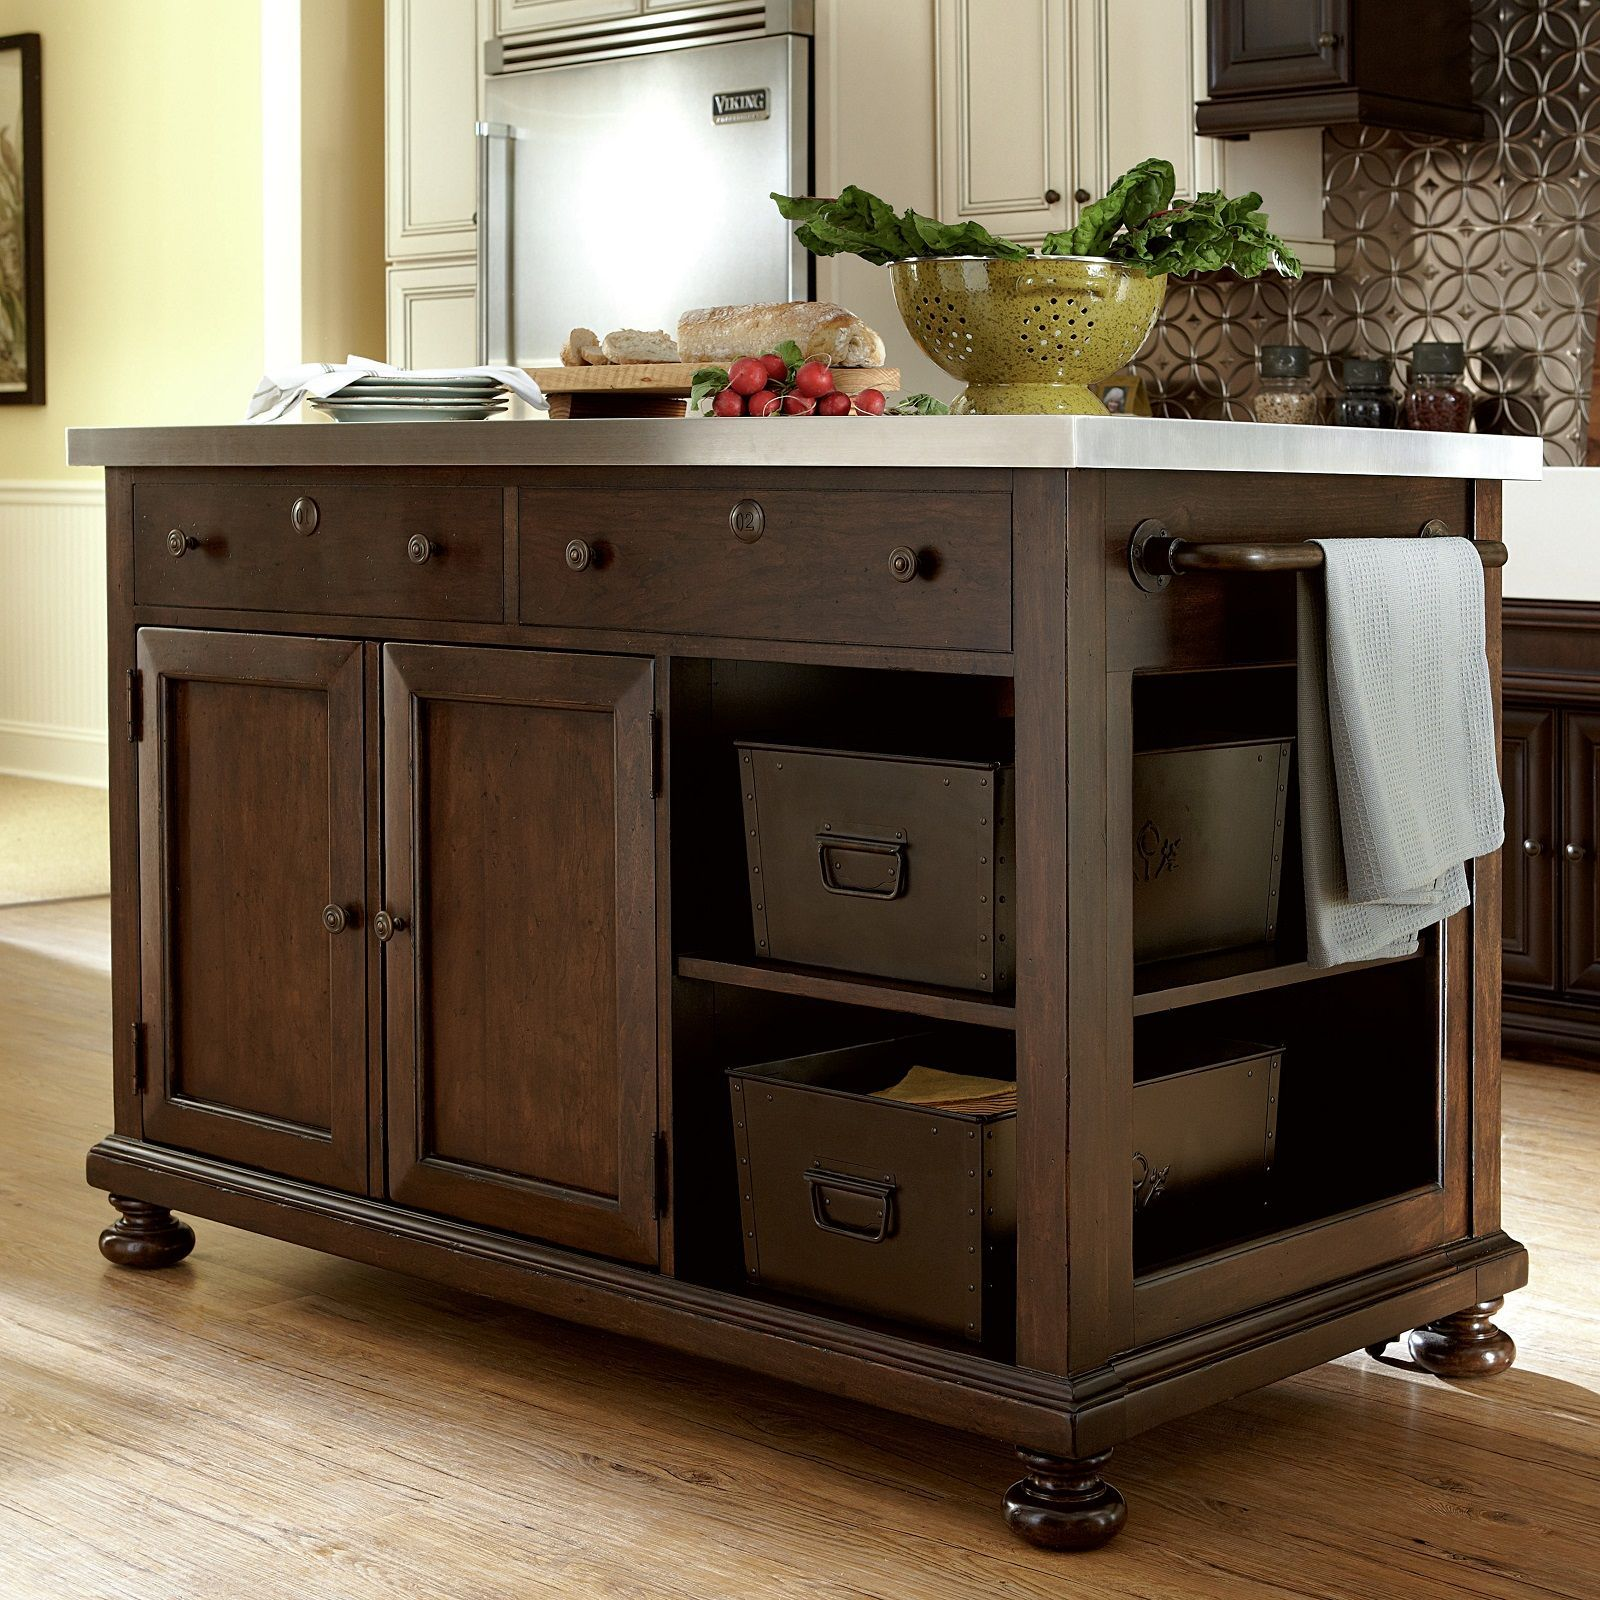 Find Out The Best And Awesome Kitchen Island Design &